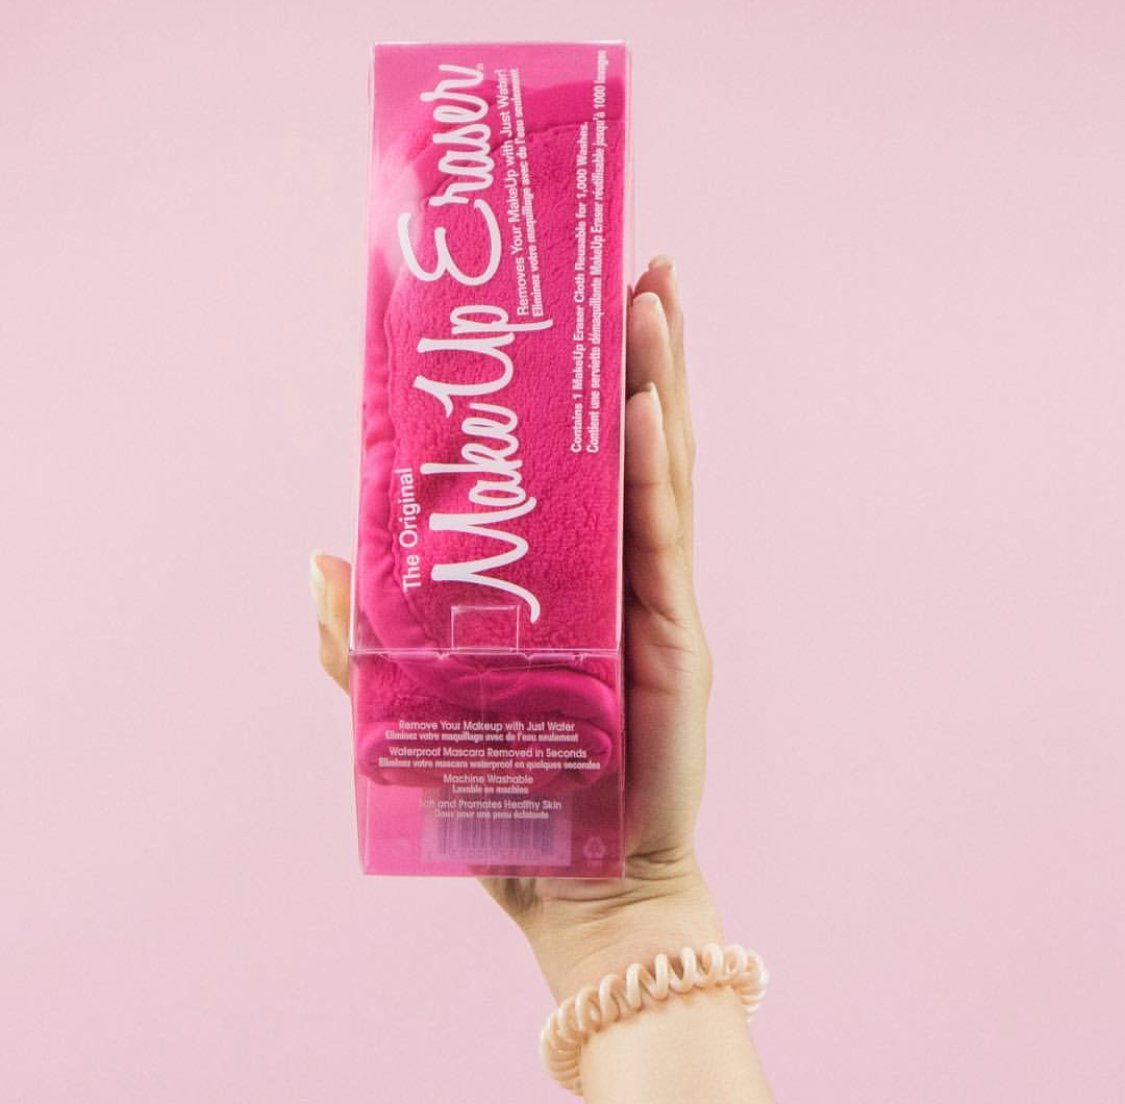 Hand holding up pink MakeUp Eraser box